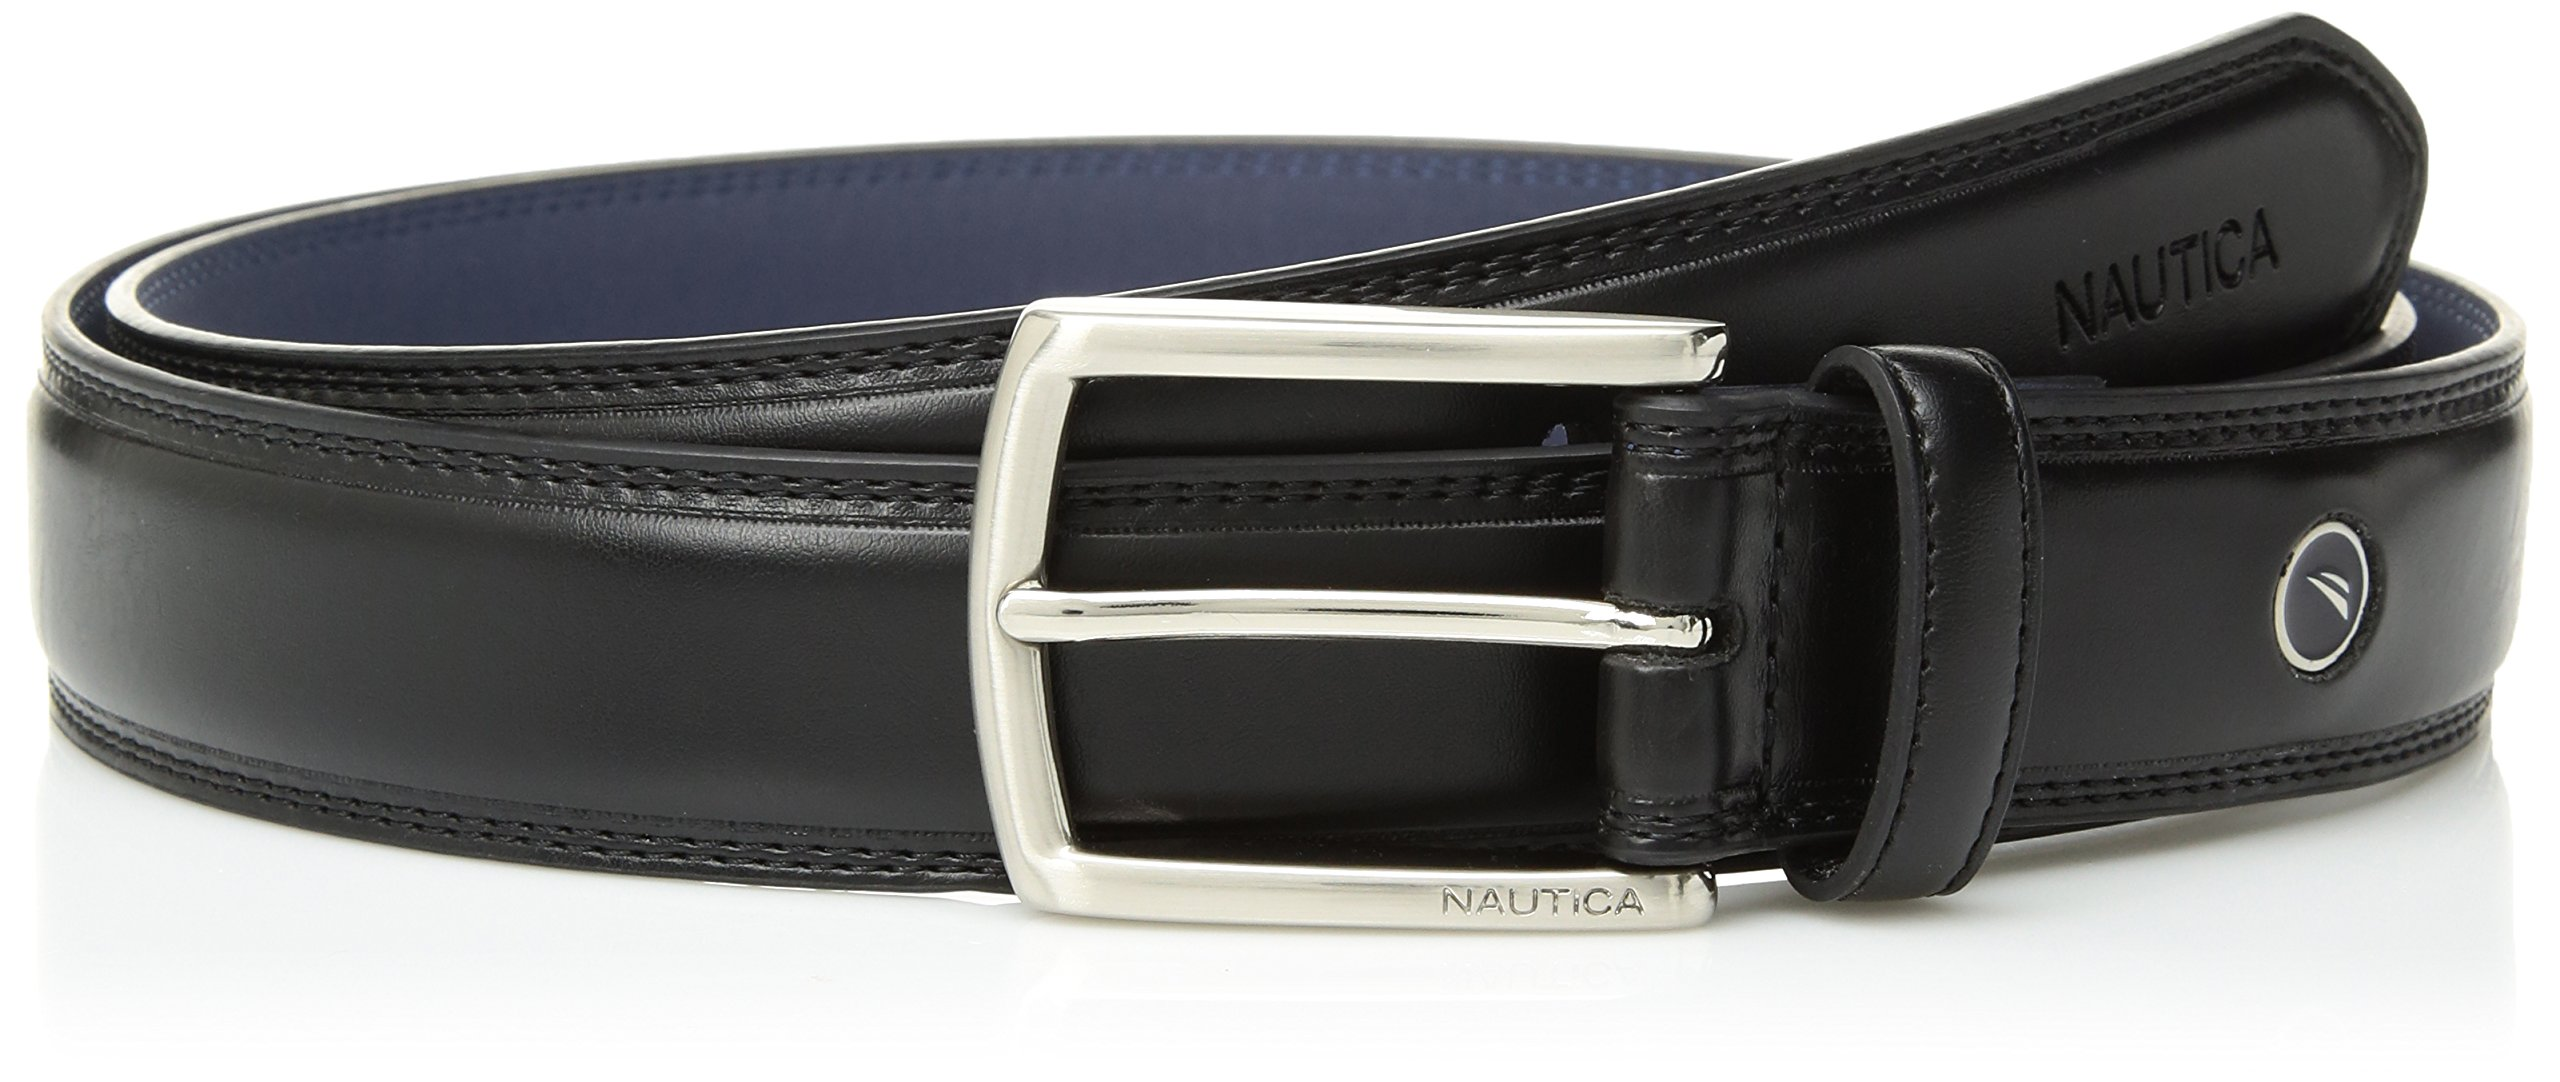 Nautica Men's Feathered Edge with Double-Stitch Casual Leather Belt,Black,42